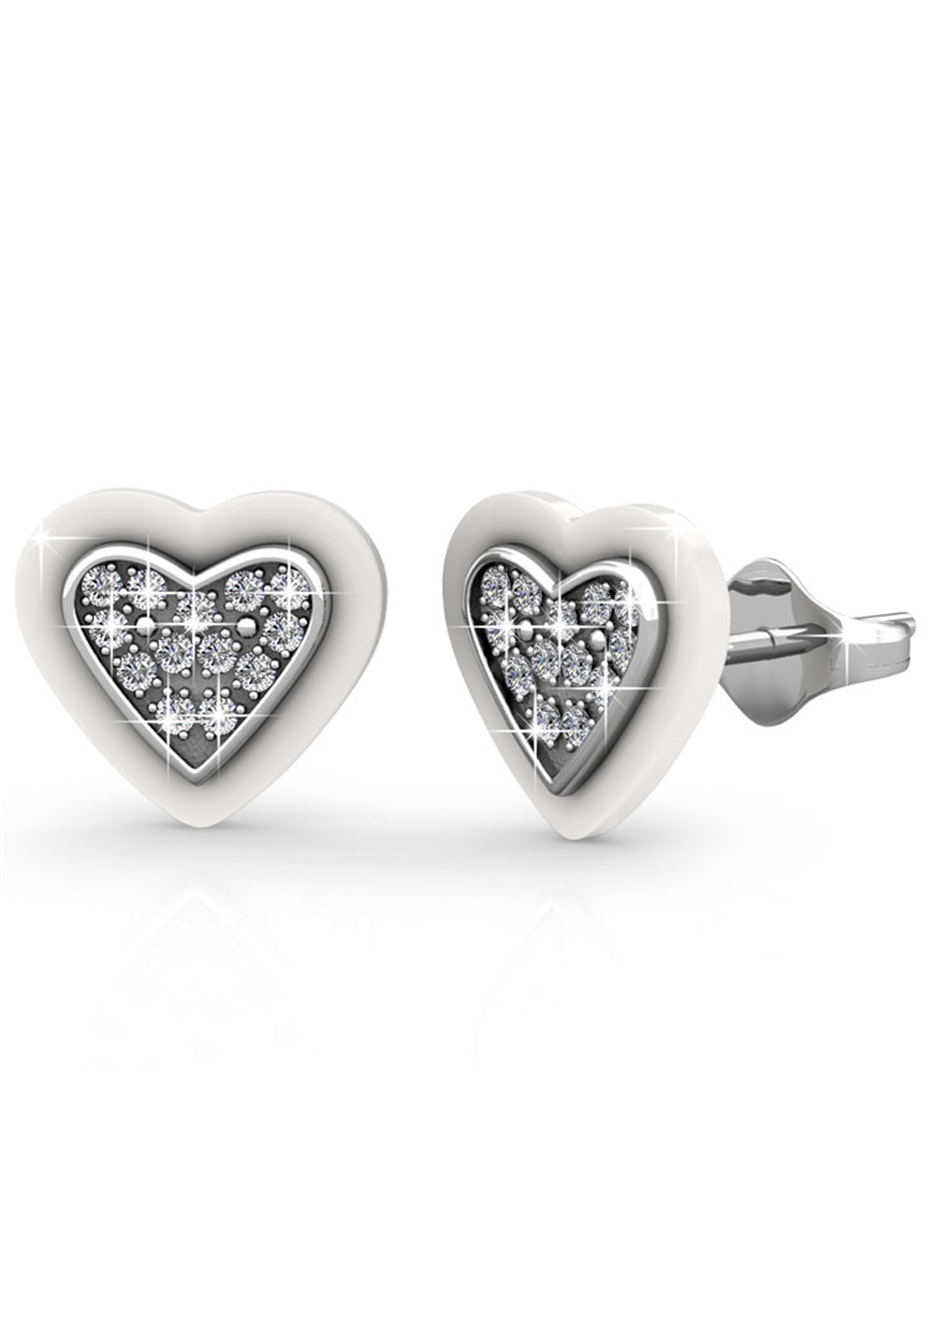 White and White Gold Earrings Embellished with Crystals from Swarovski